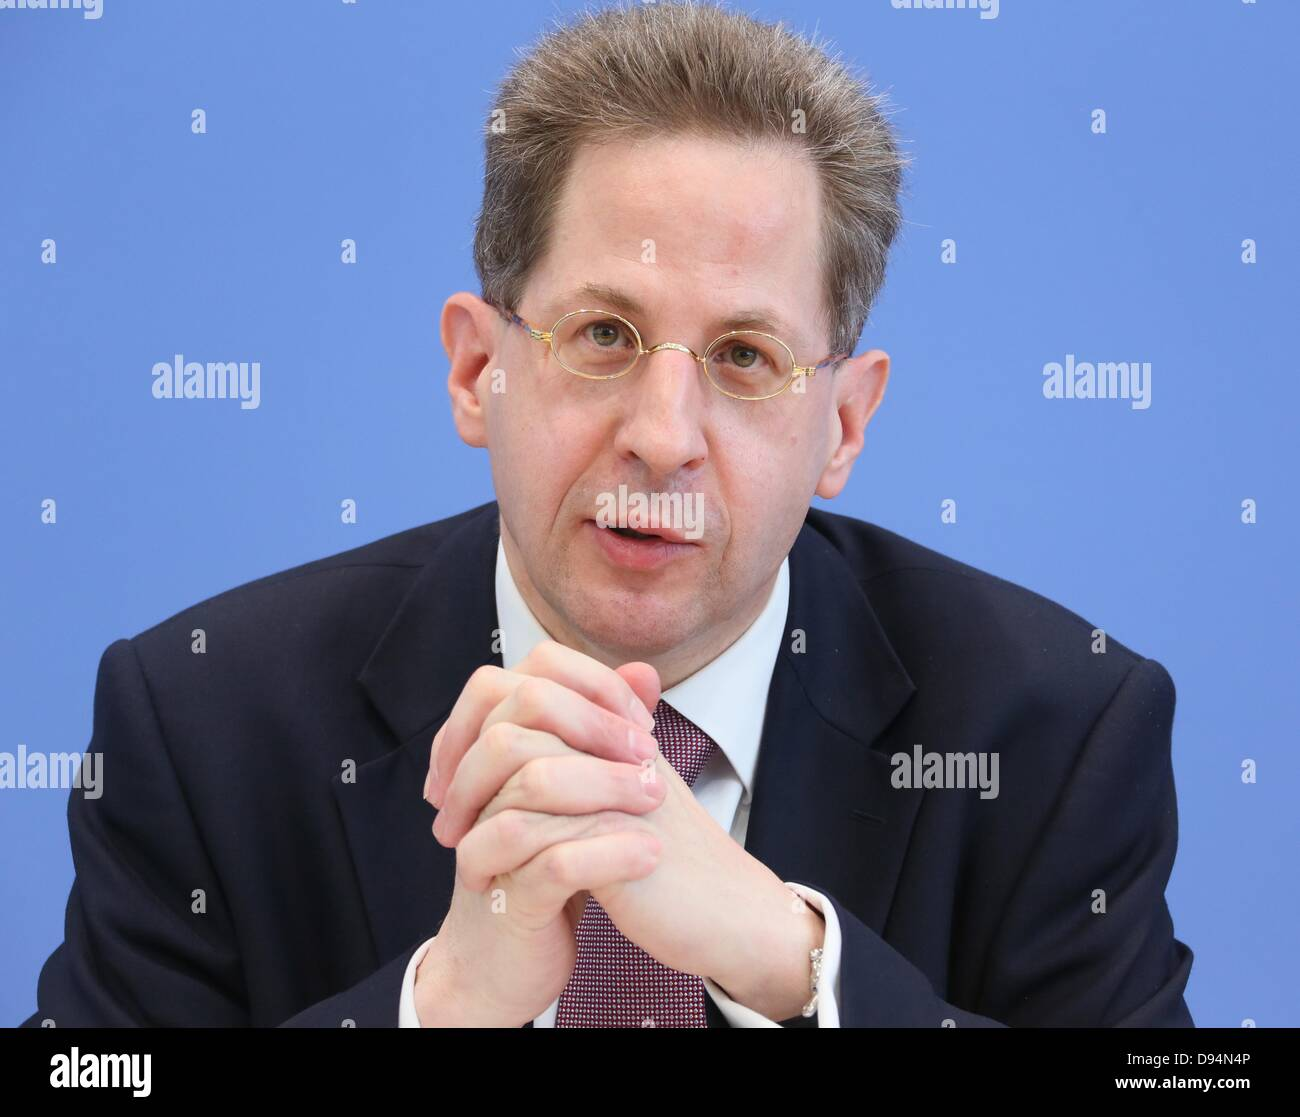 President of the Federal Office for the Protection of the Constitution, Hans-Georg Maassen, gives a press conference - Stock Image